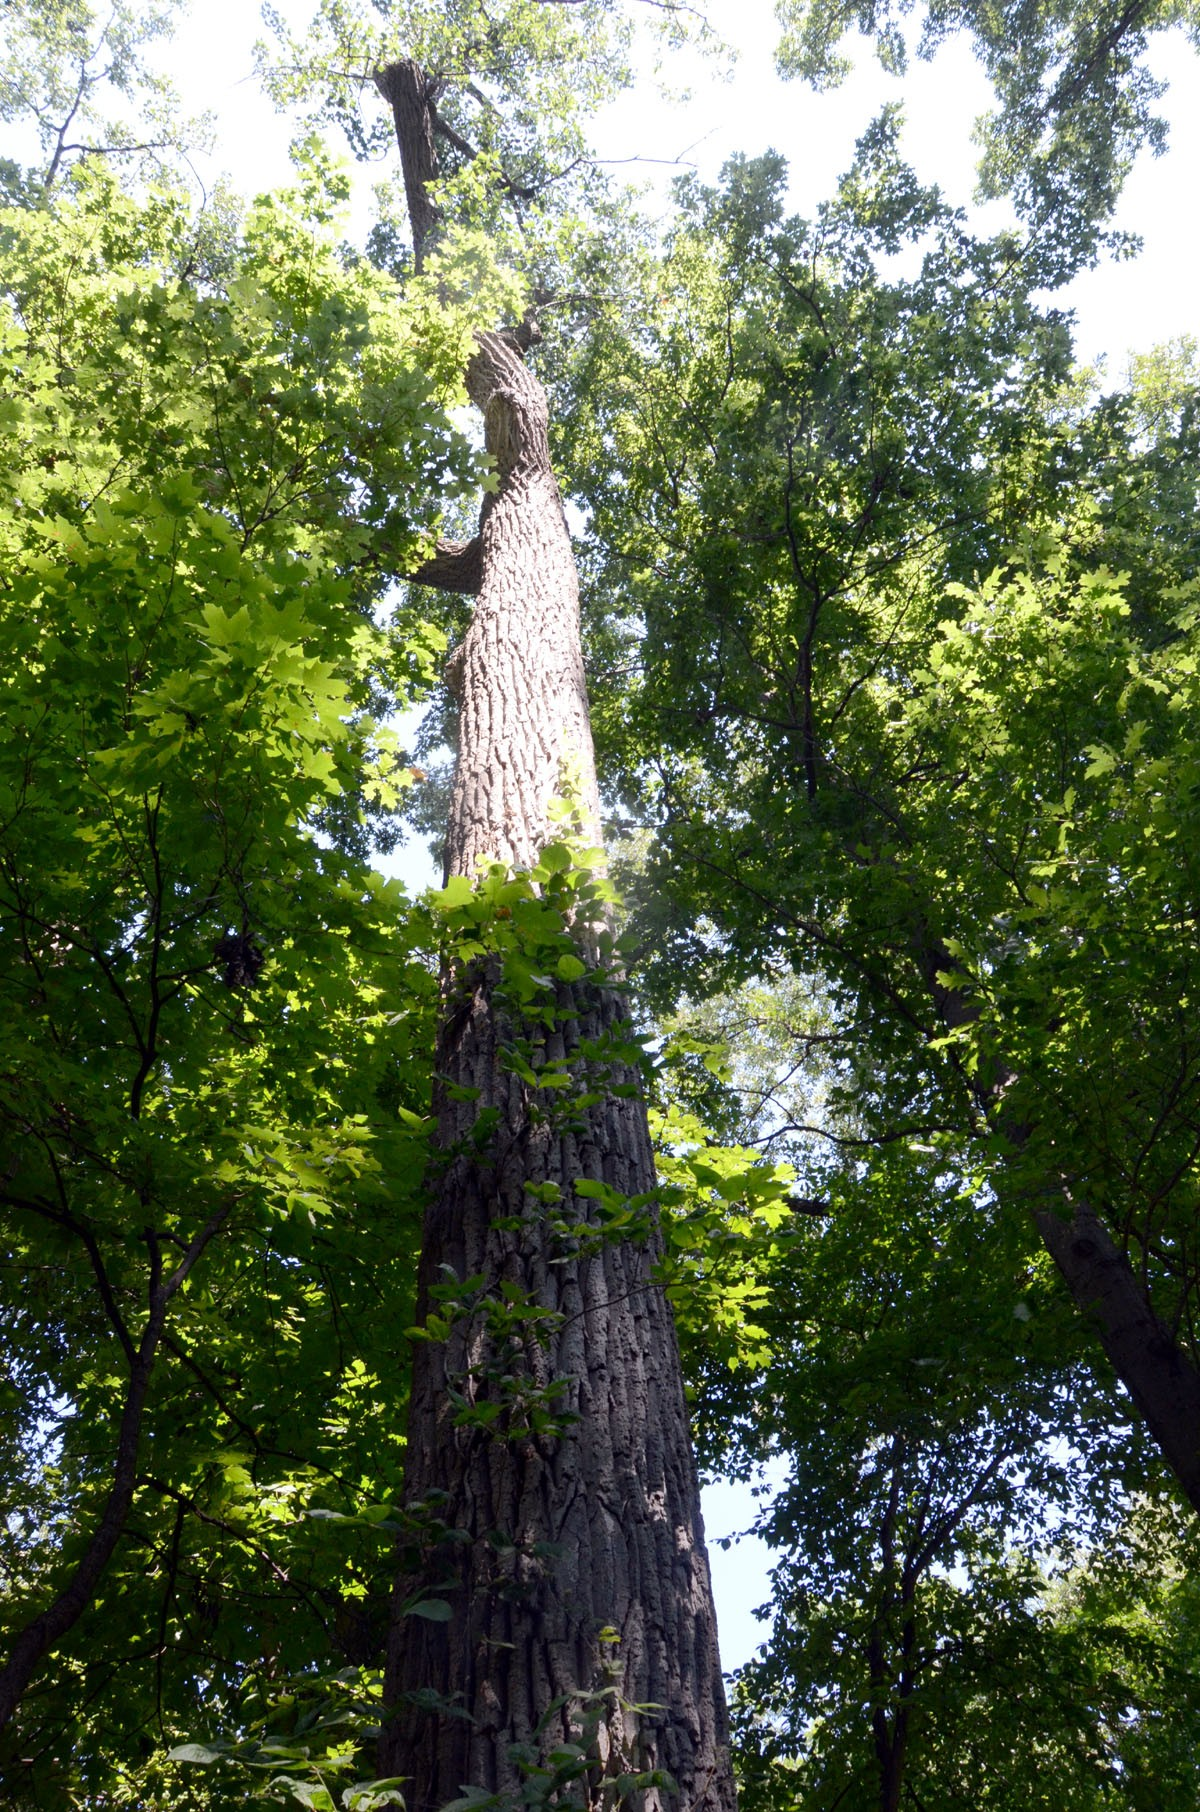 A towering old growth forest tree on property where the city wants to develop a proposed industrial park. (Press photo by Ken Grosjean)